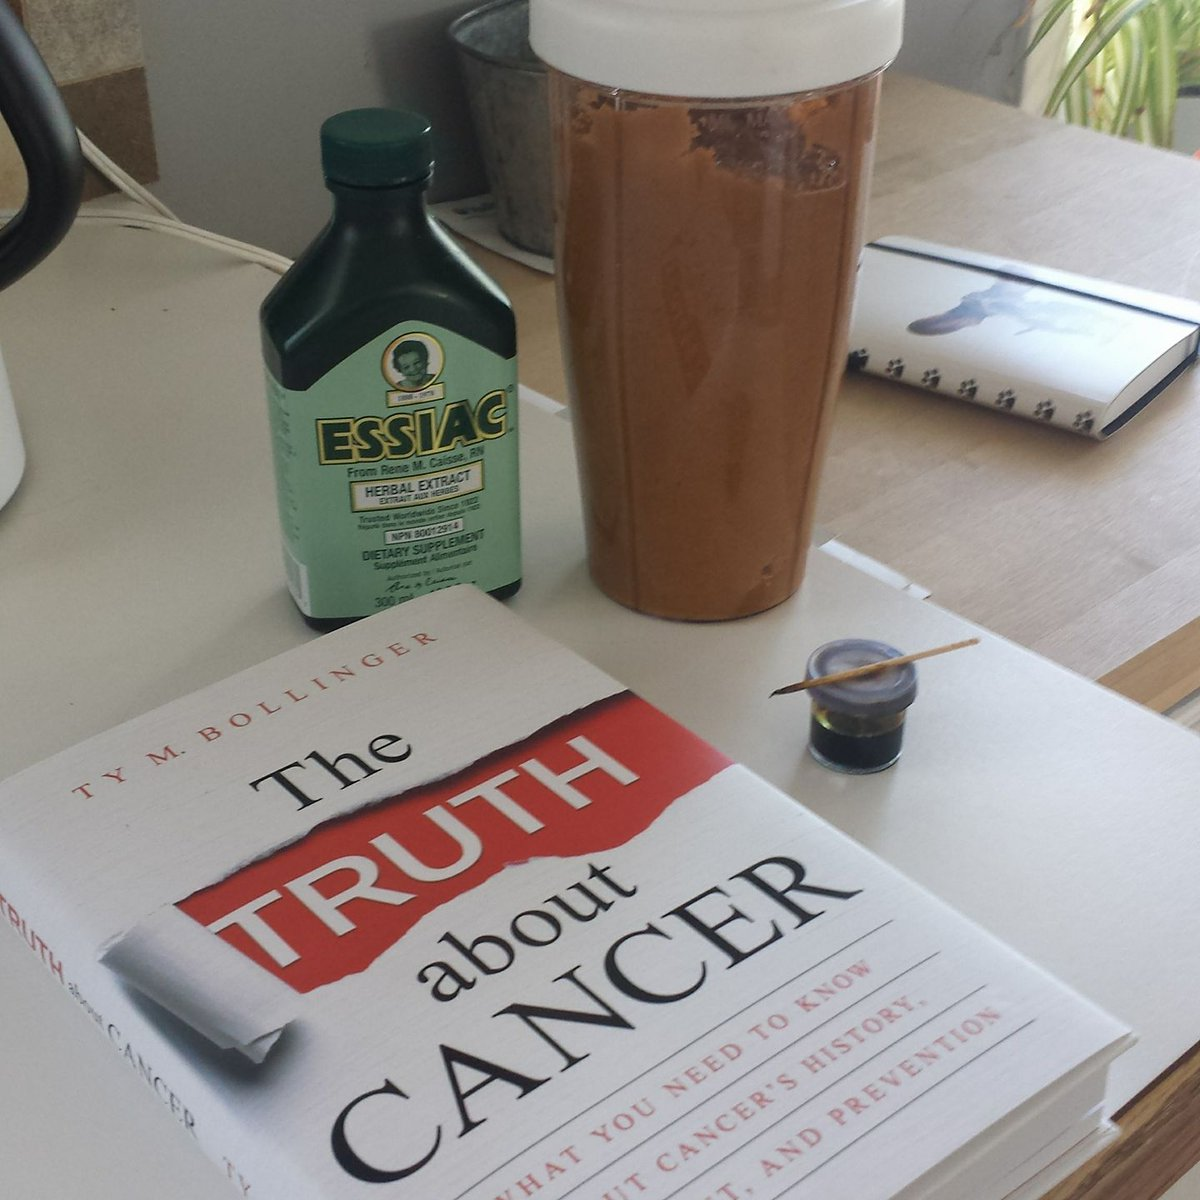 Cancer cure essiac herbal tea -  Cancer Cbdoil Essiac Education And Some Tools To Fight This Cancer Pic Twitter Com Om8kz31met